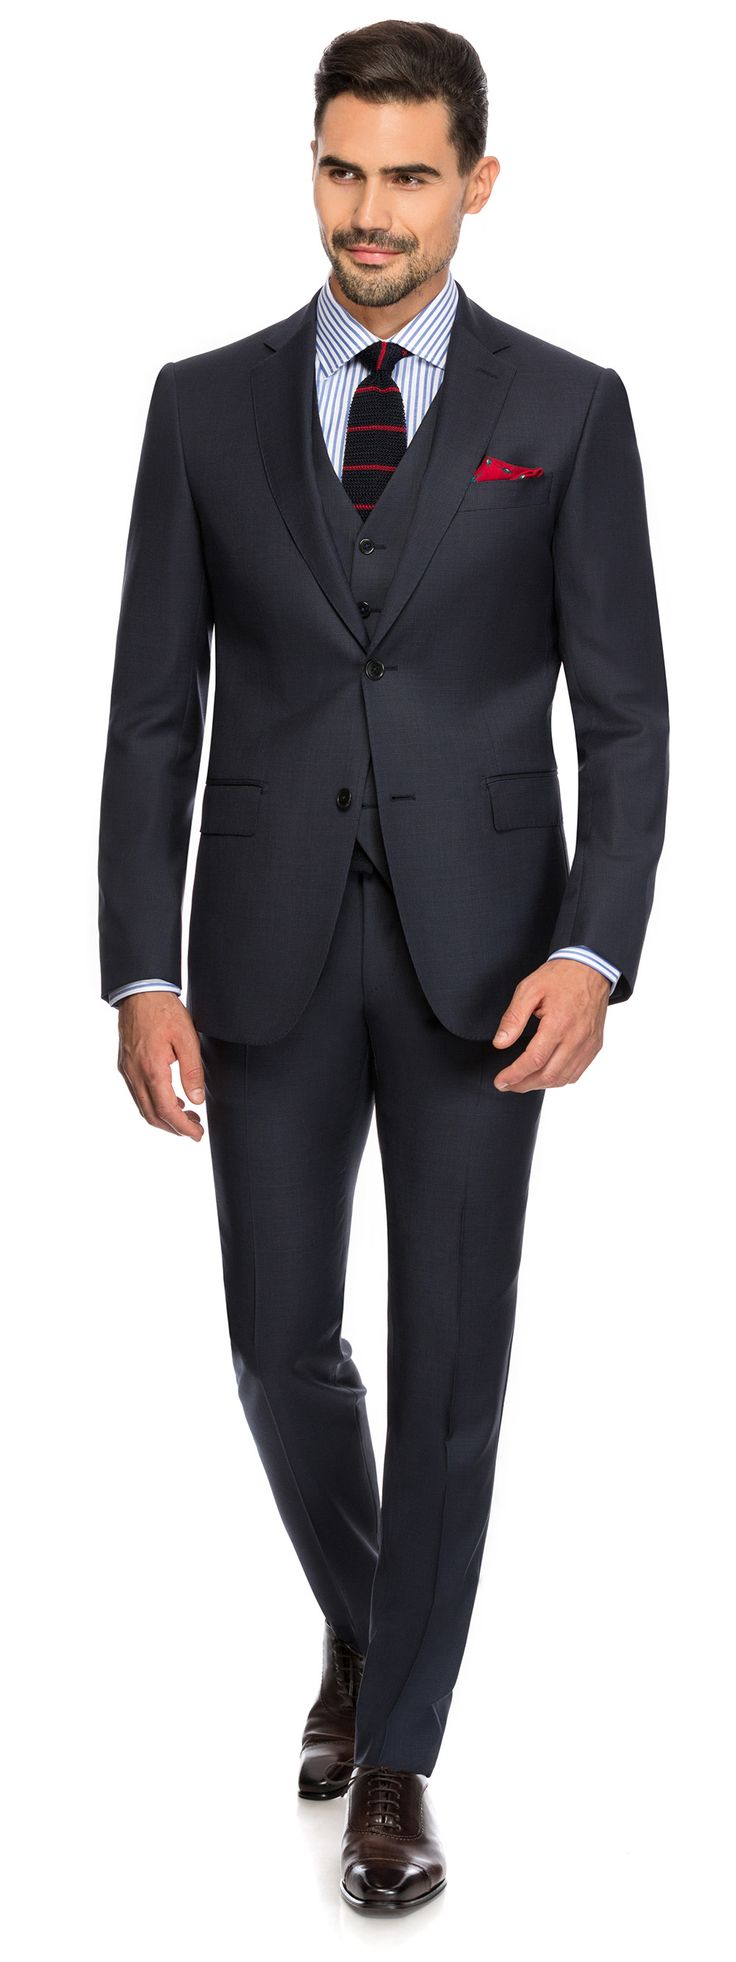 CHARCOAL PIN POINT SUIT